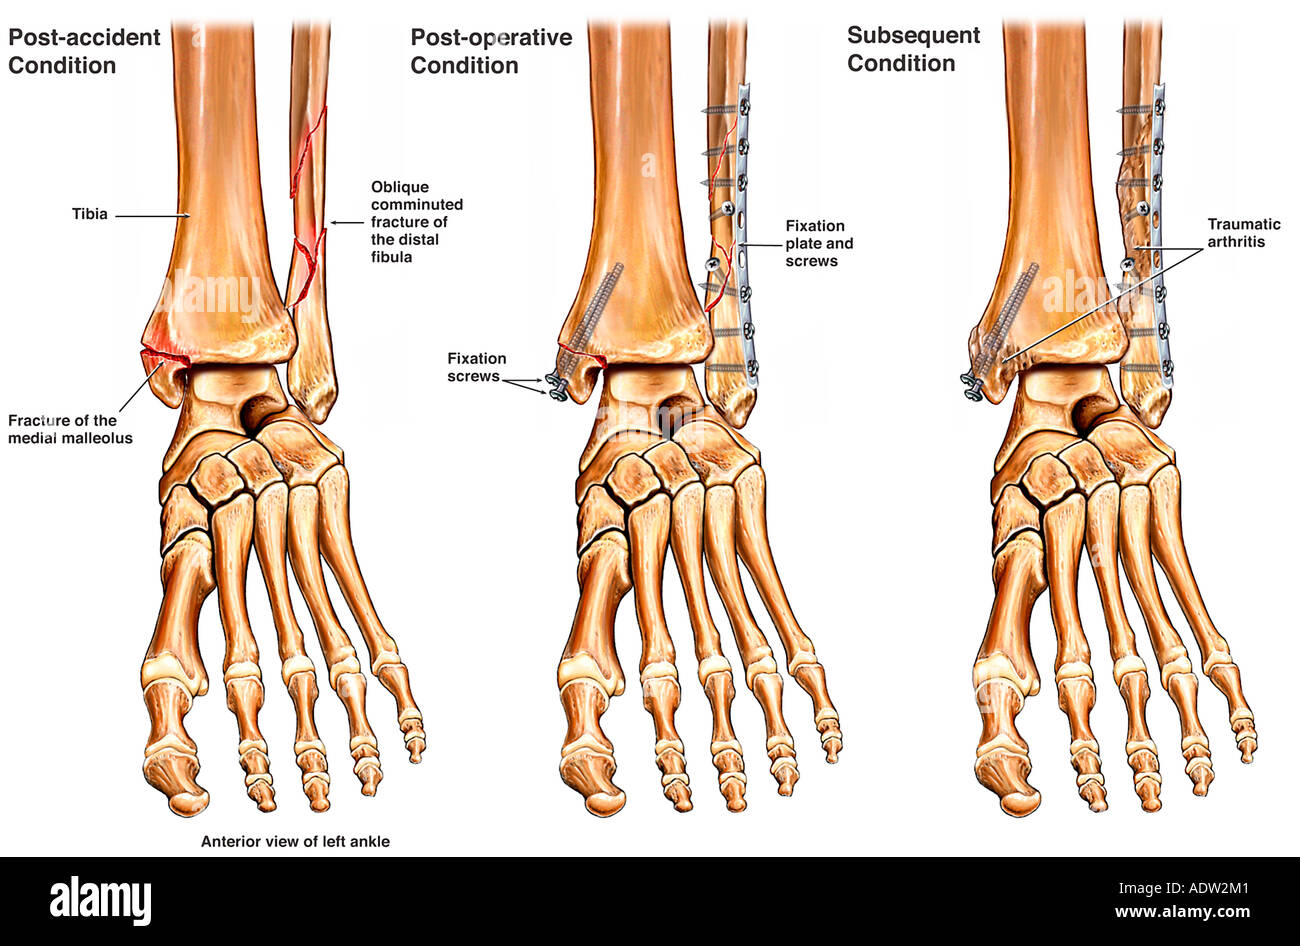 Left Ankle Fracture with Surgical Fixation and Subsequent Arthritis - Stock Image